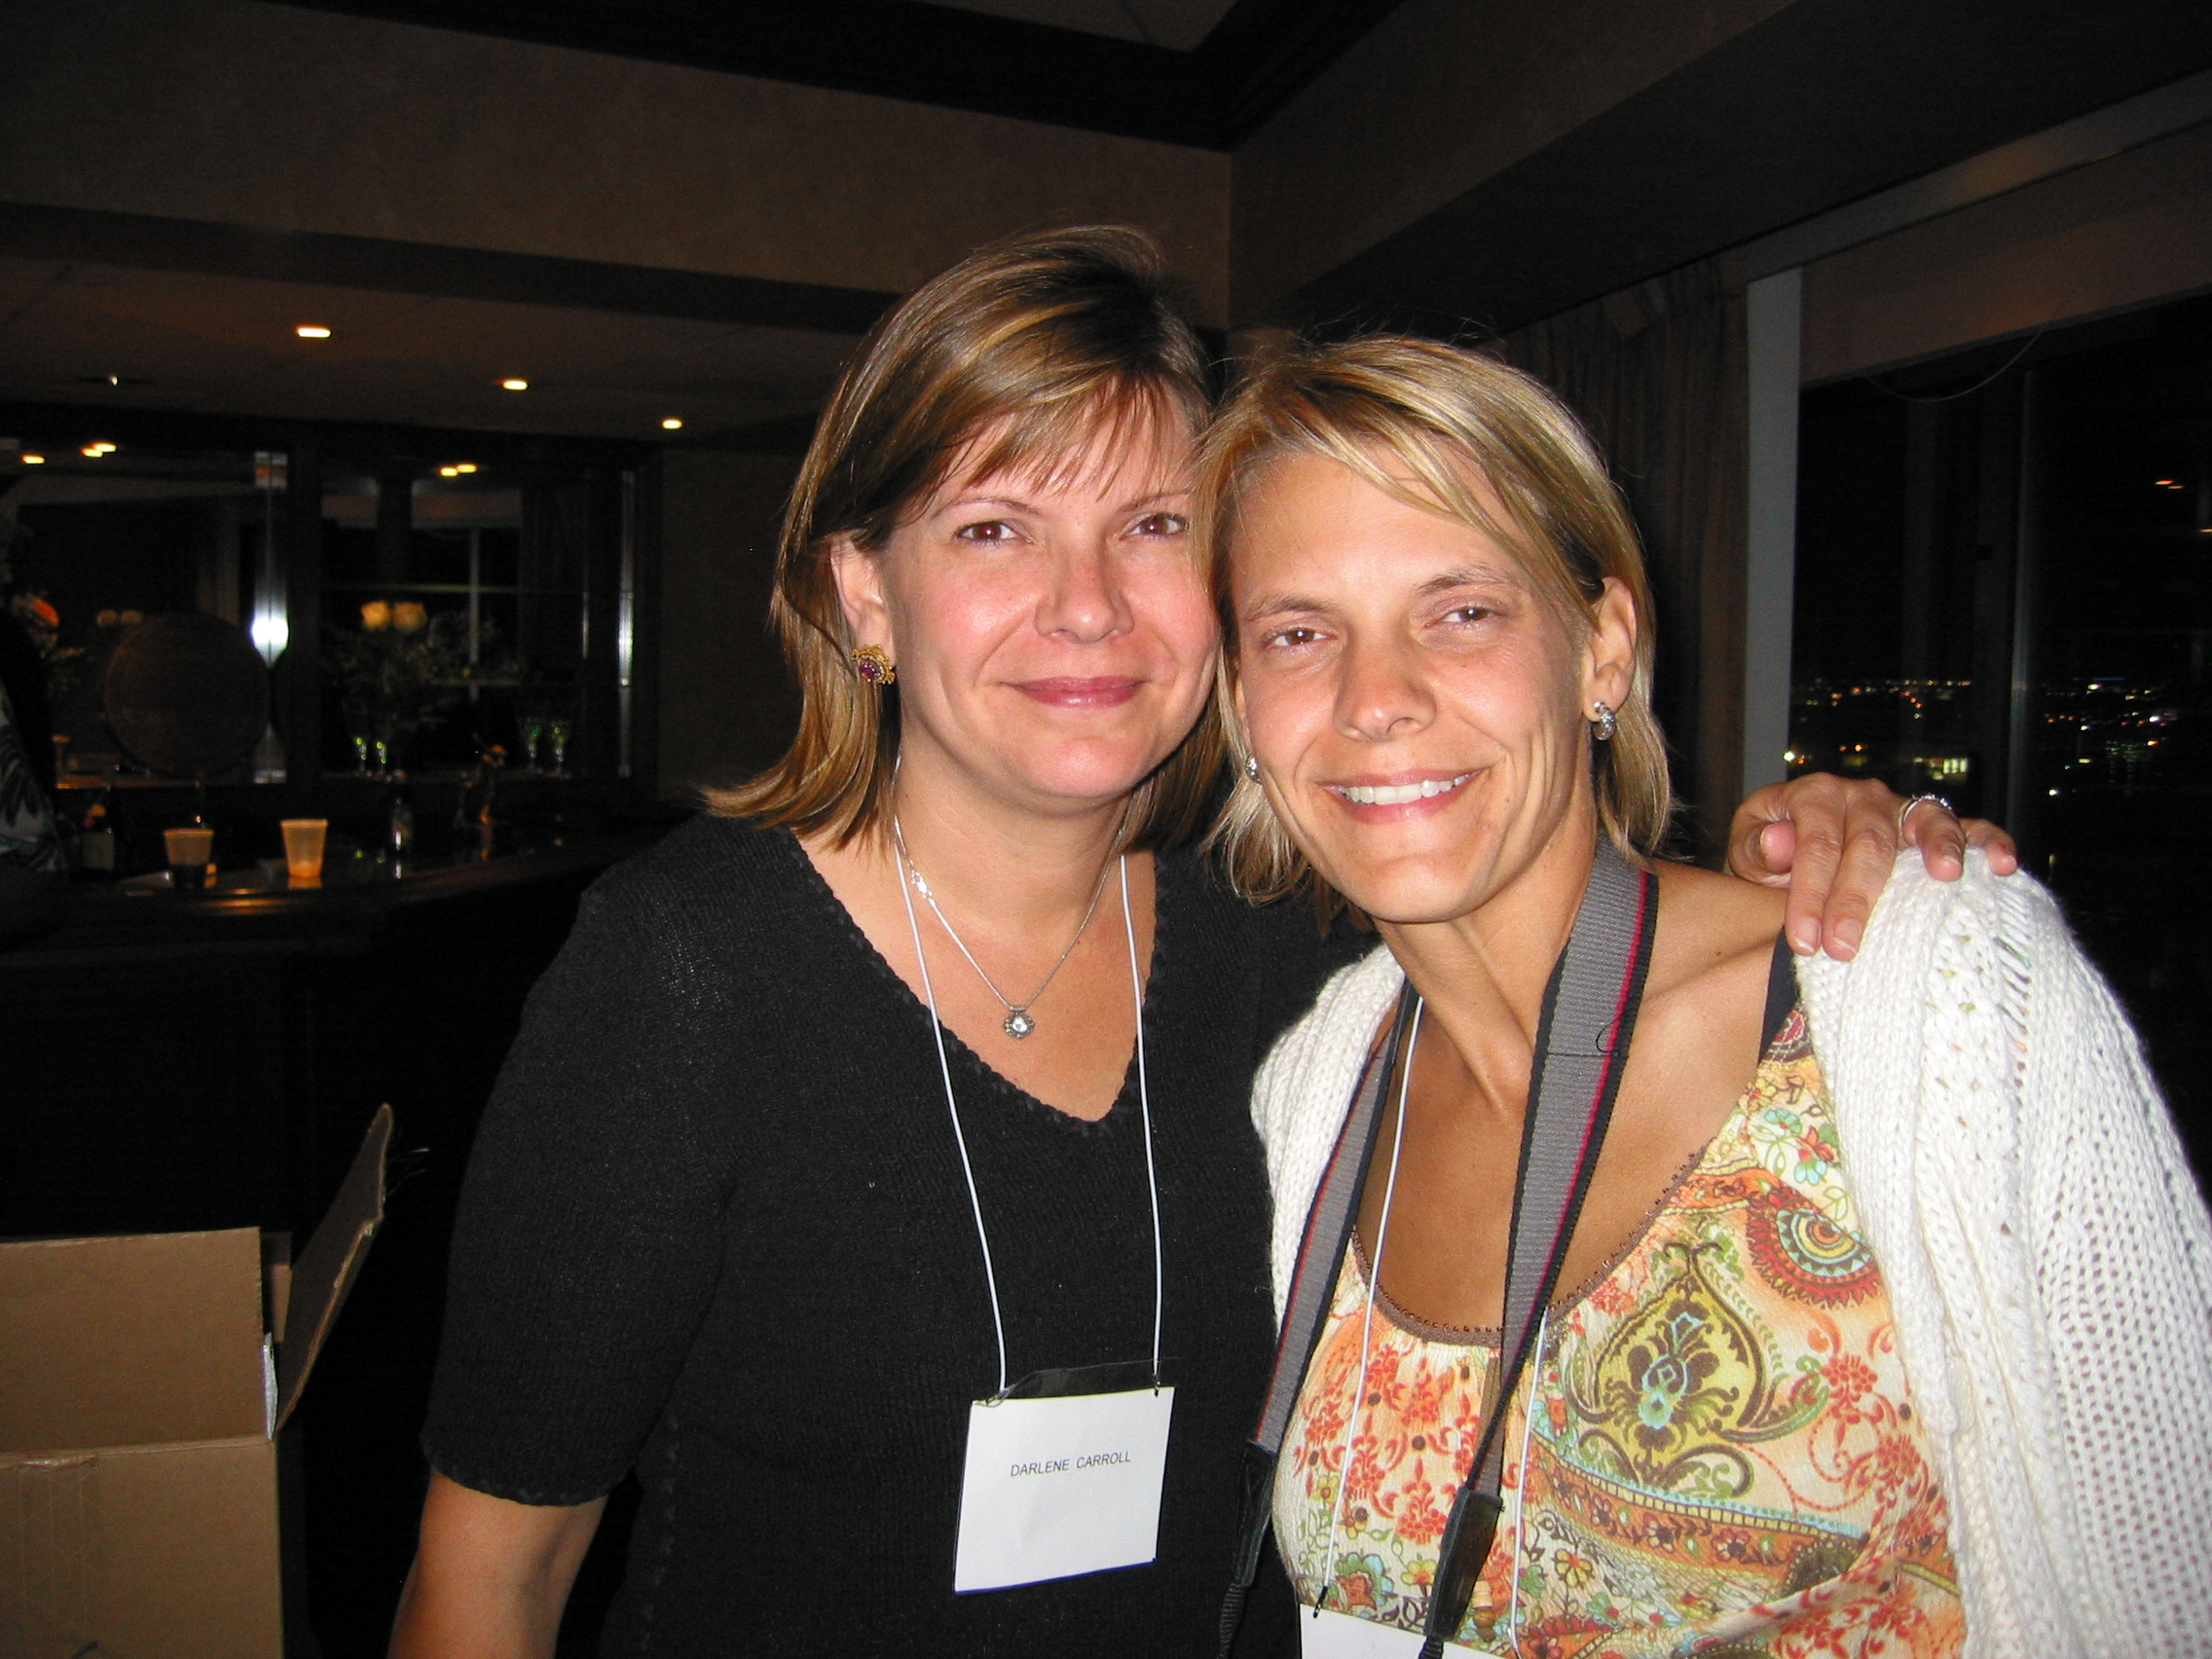 Darlene Carroll & Susan Viele, Pat Carroll's daughters